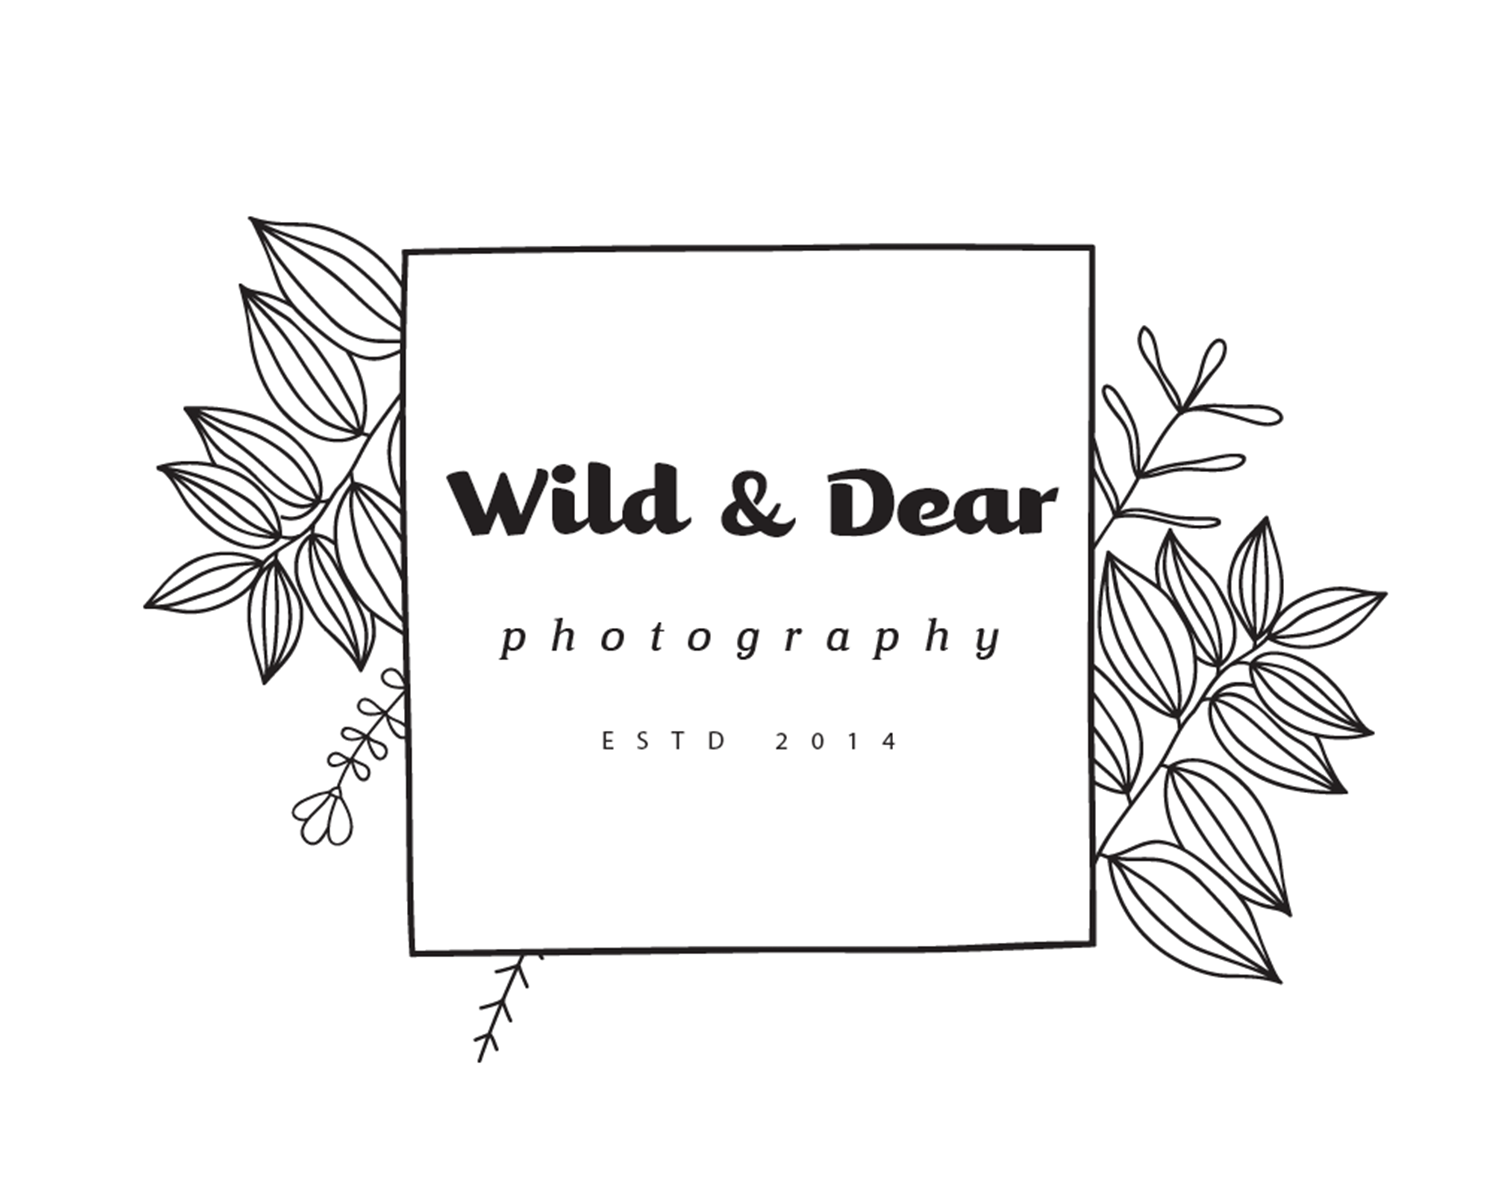 Wild & Dear Photography